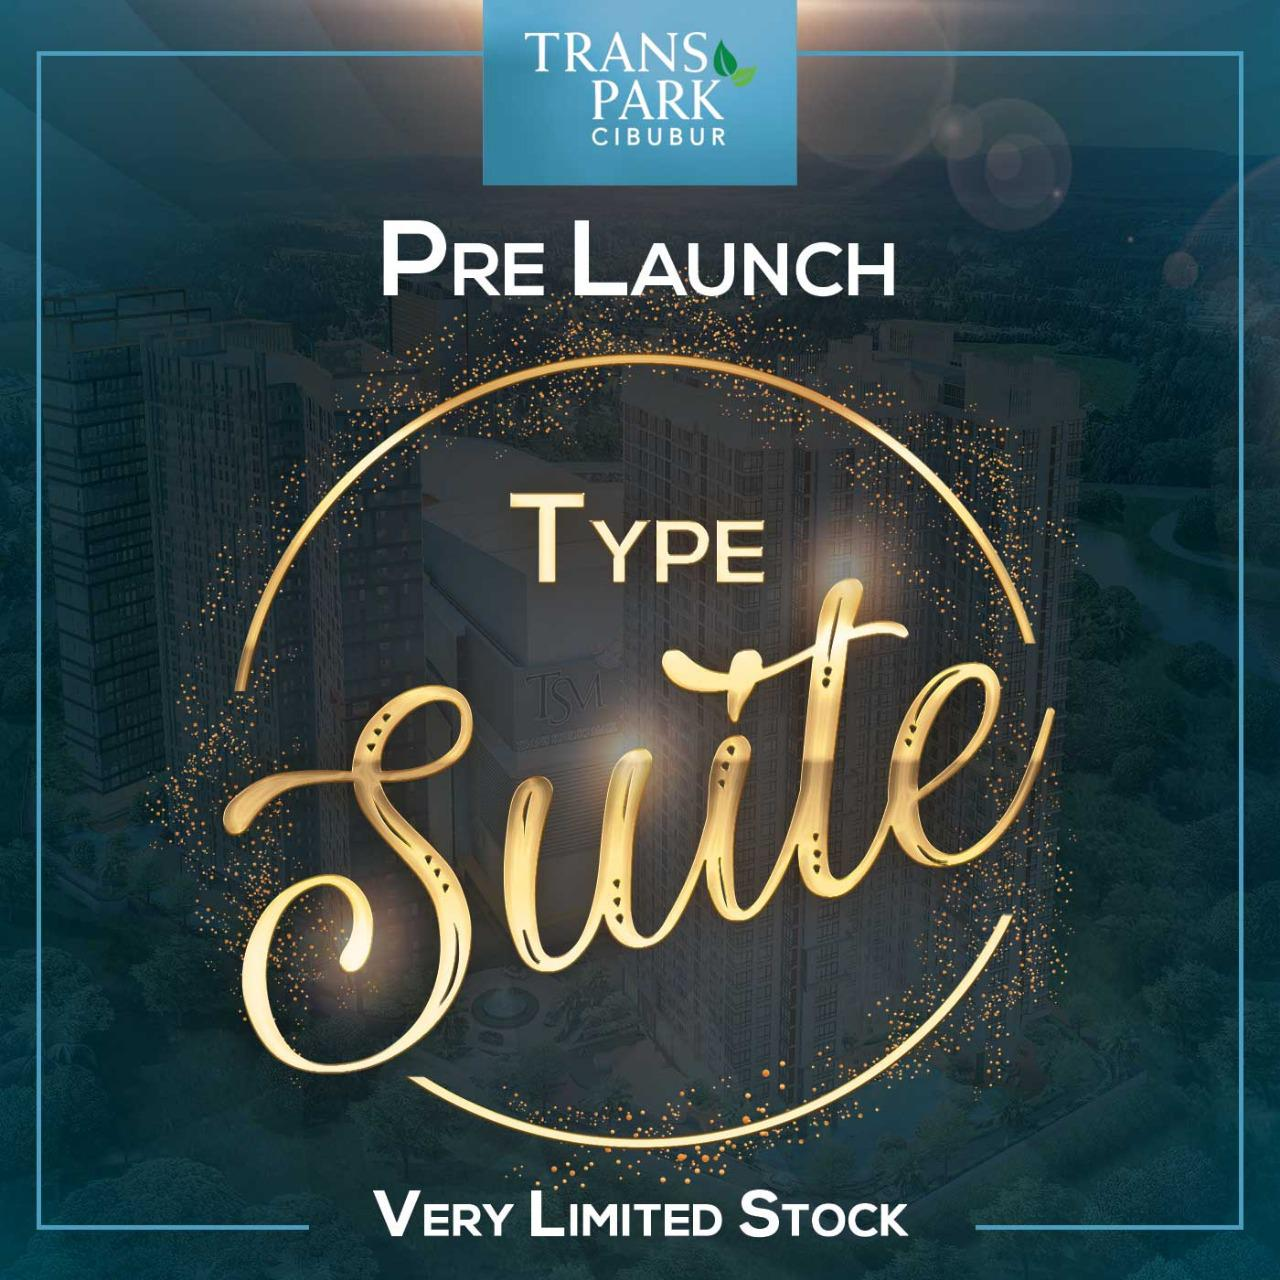 PRE LAUNCH NEW TYPE TRANS PARK CIBUBUR